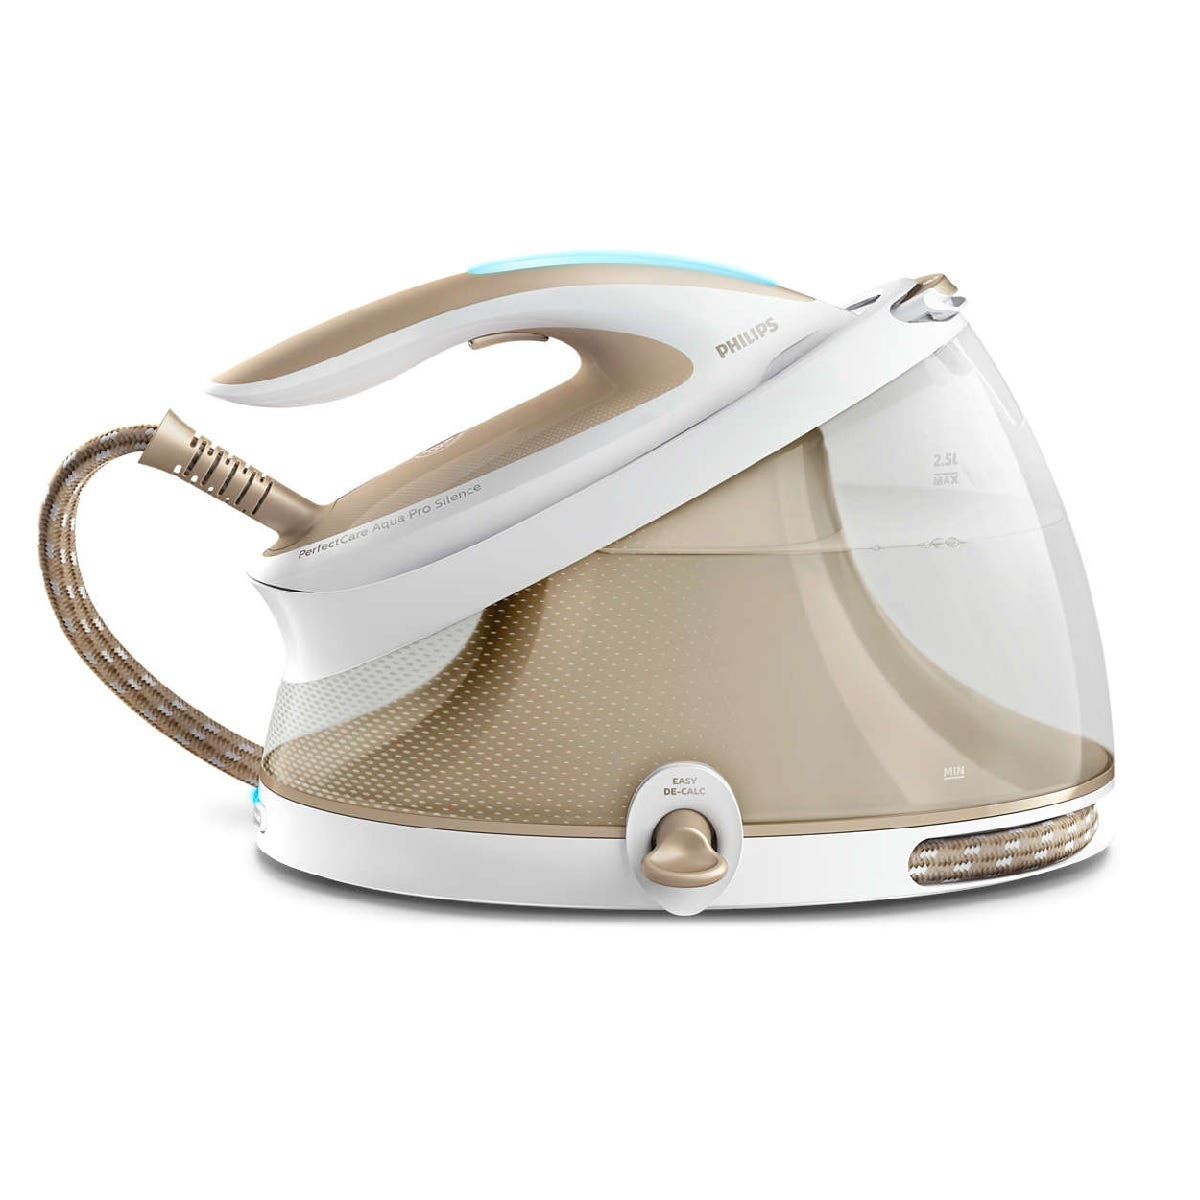 Image of Philips Perfect Care Compact Steam Generator - Gold/White